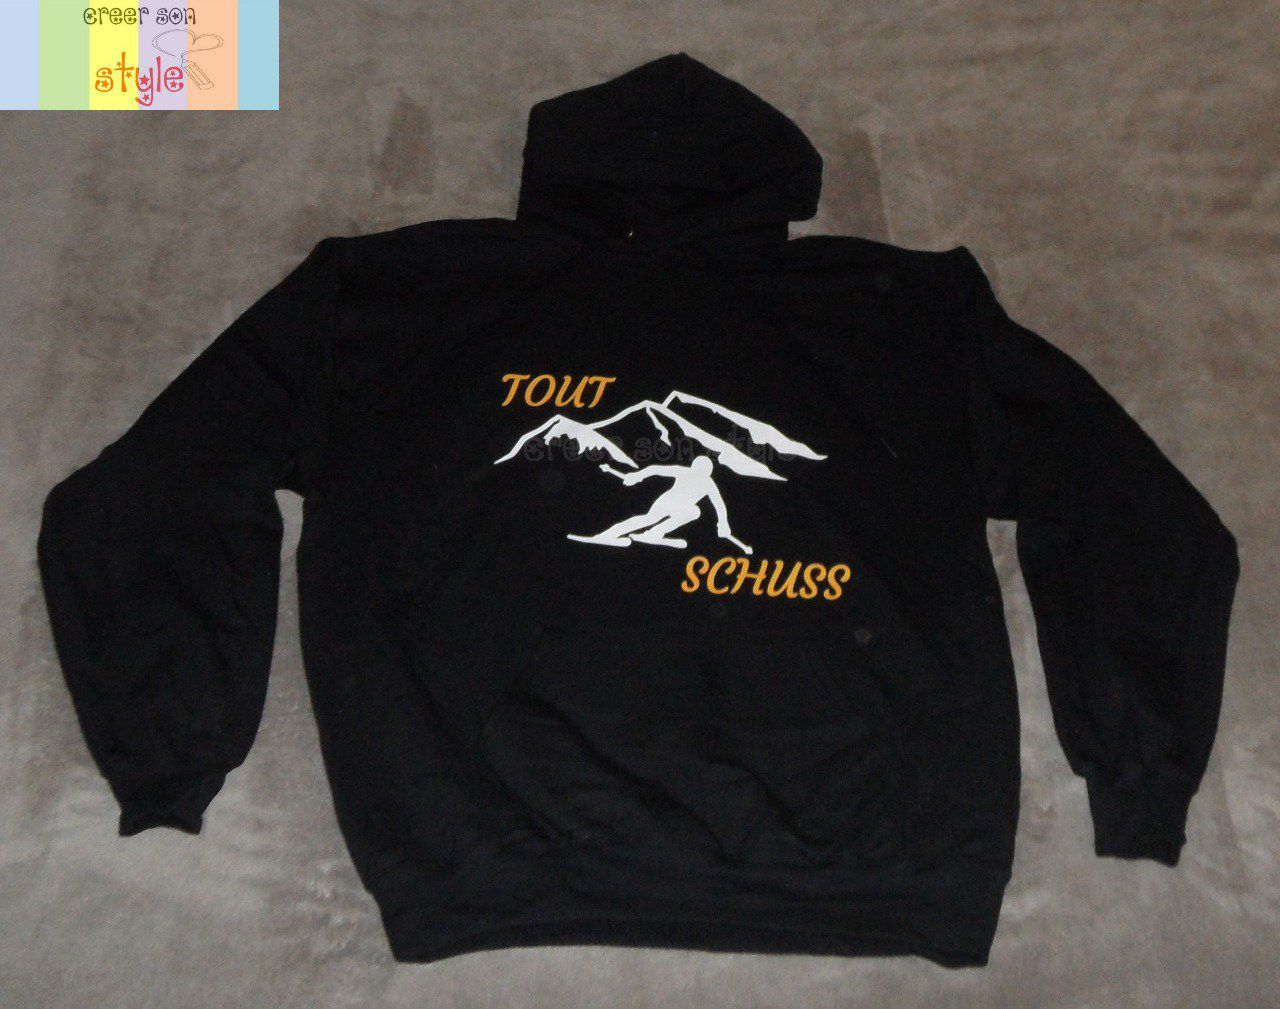 "Sweat-shirt ""Tout schuss"""